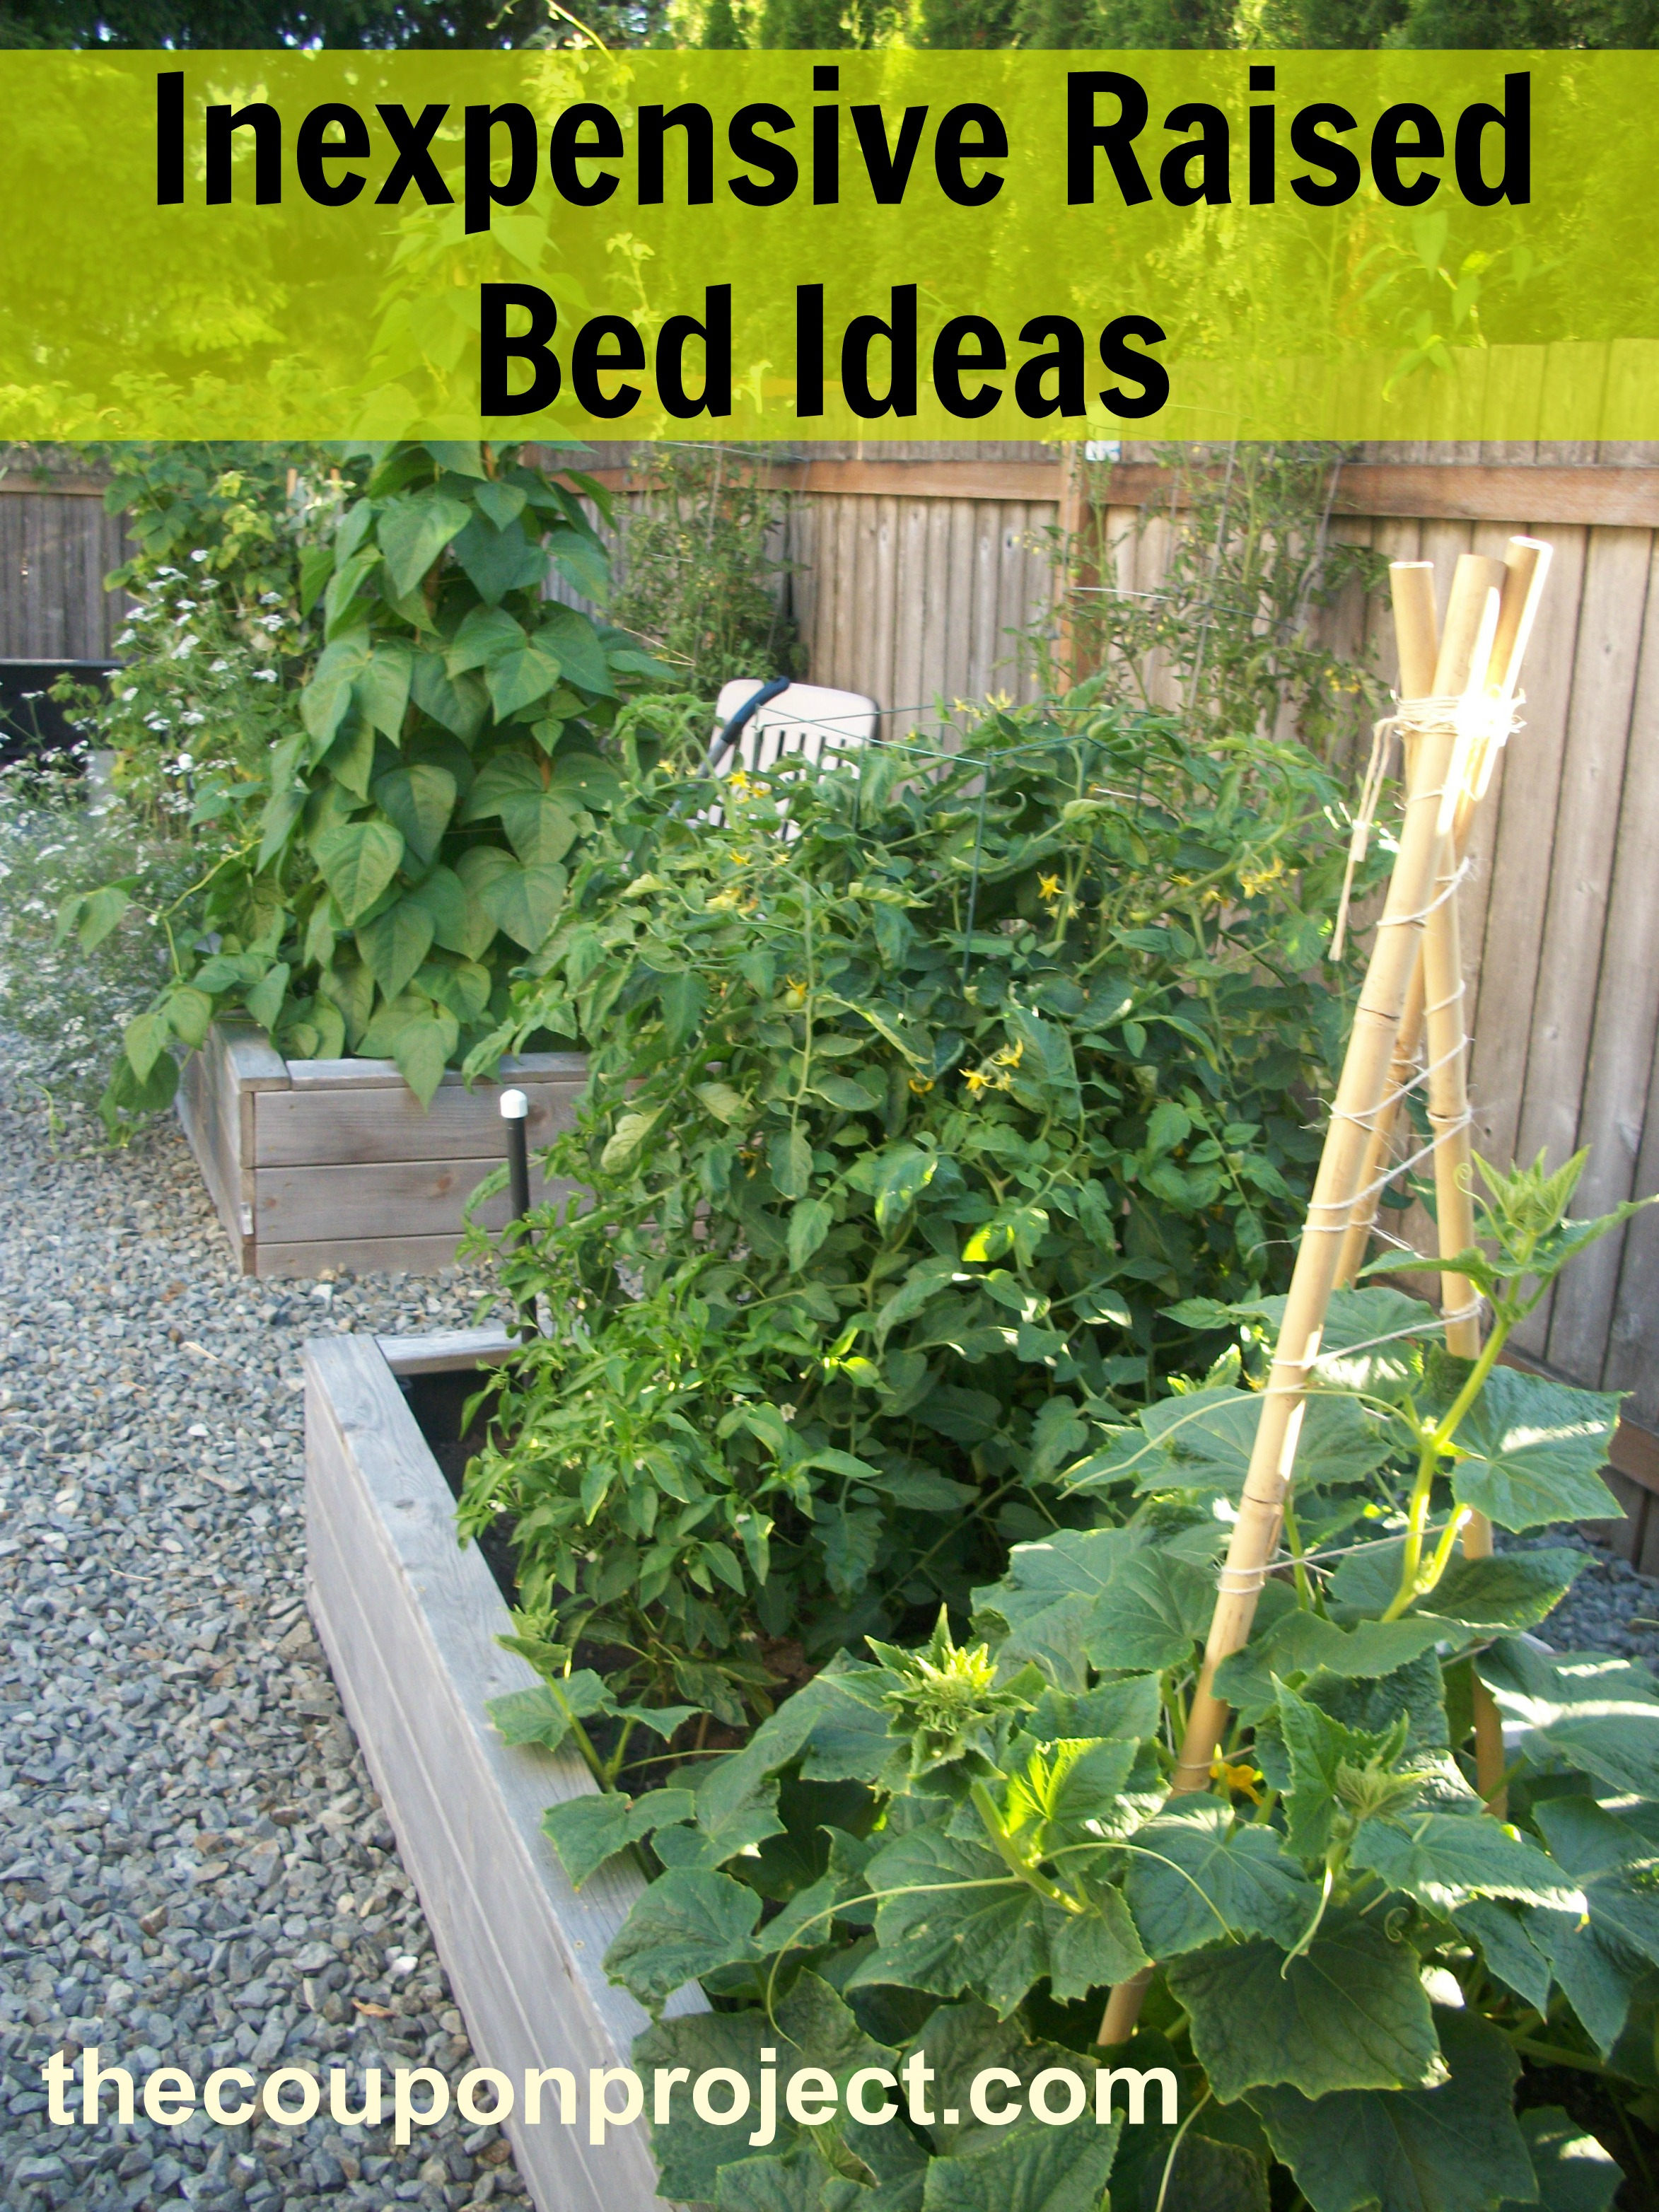 Elevated Garden Ideas raisedbeds1 How To Make Inexpensive Raised Beds Four Different Ideas